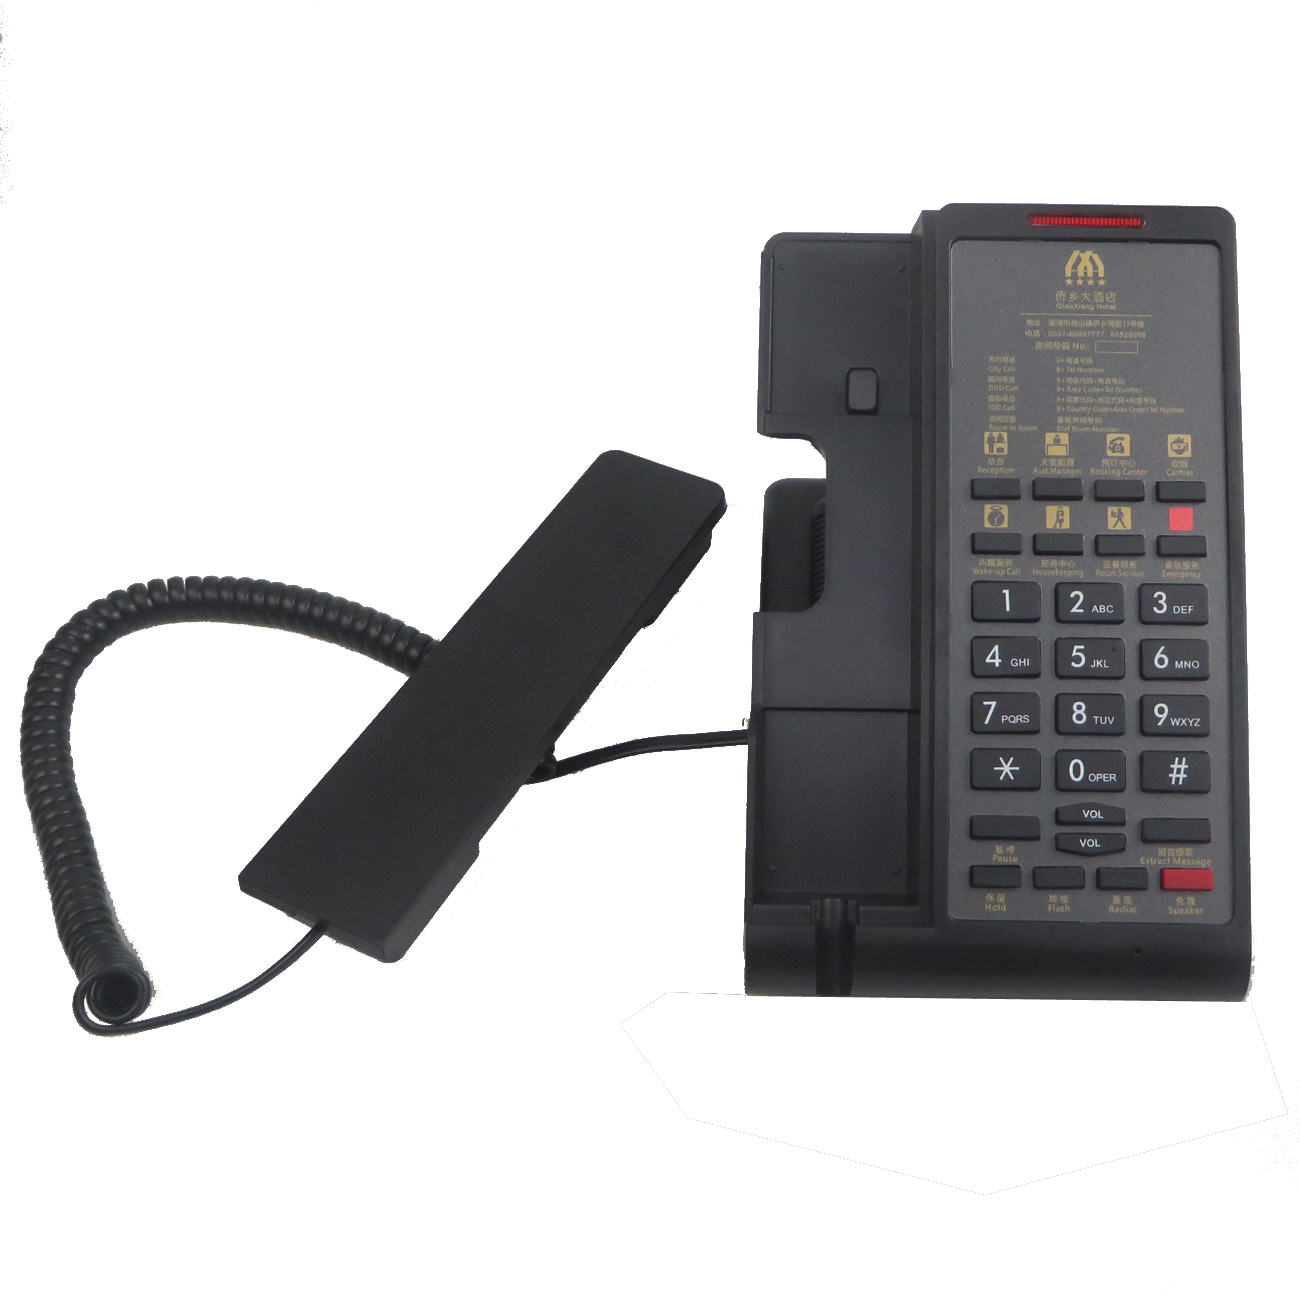 Luxury Hotel Phone Small Landline Hospitality Fixed Telephone For Sale